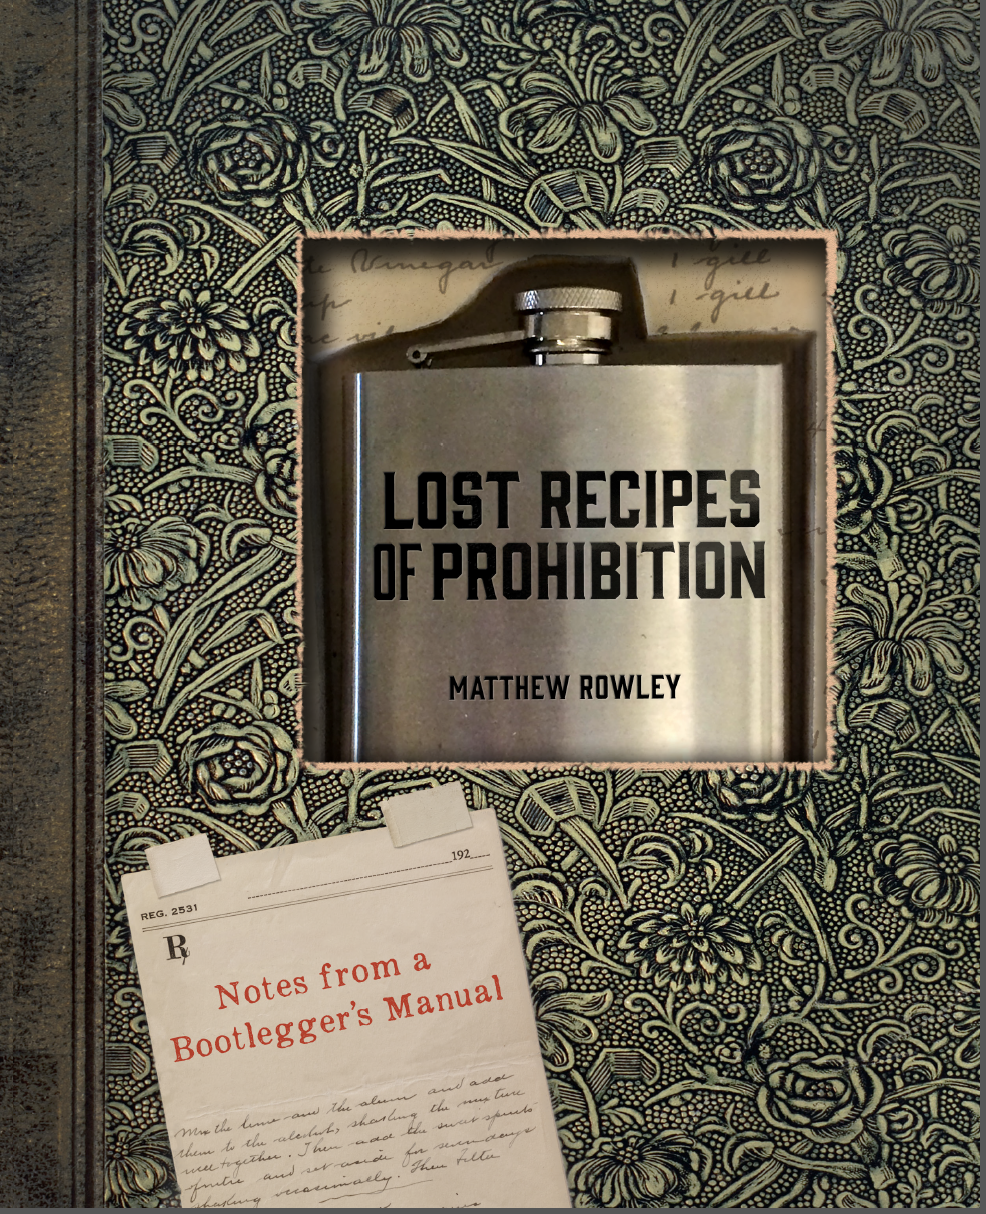 Lost Recipes of Prohbition cover low res.jpg